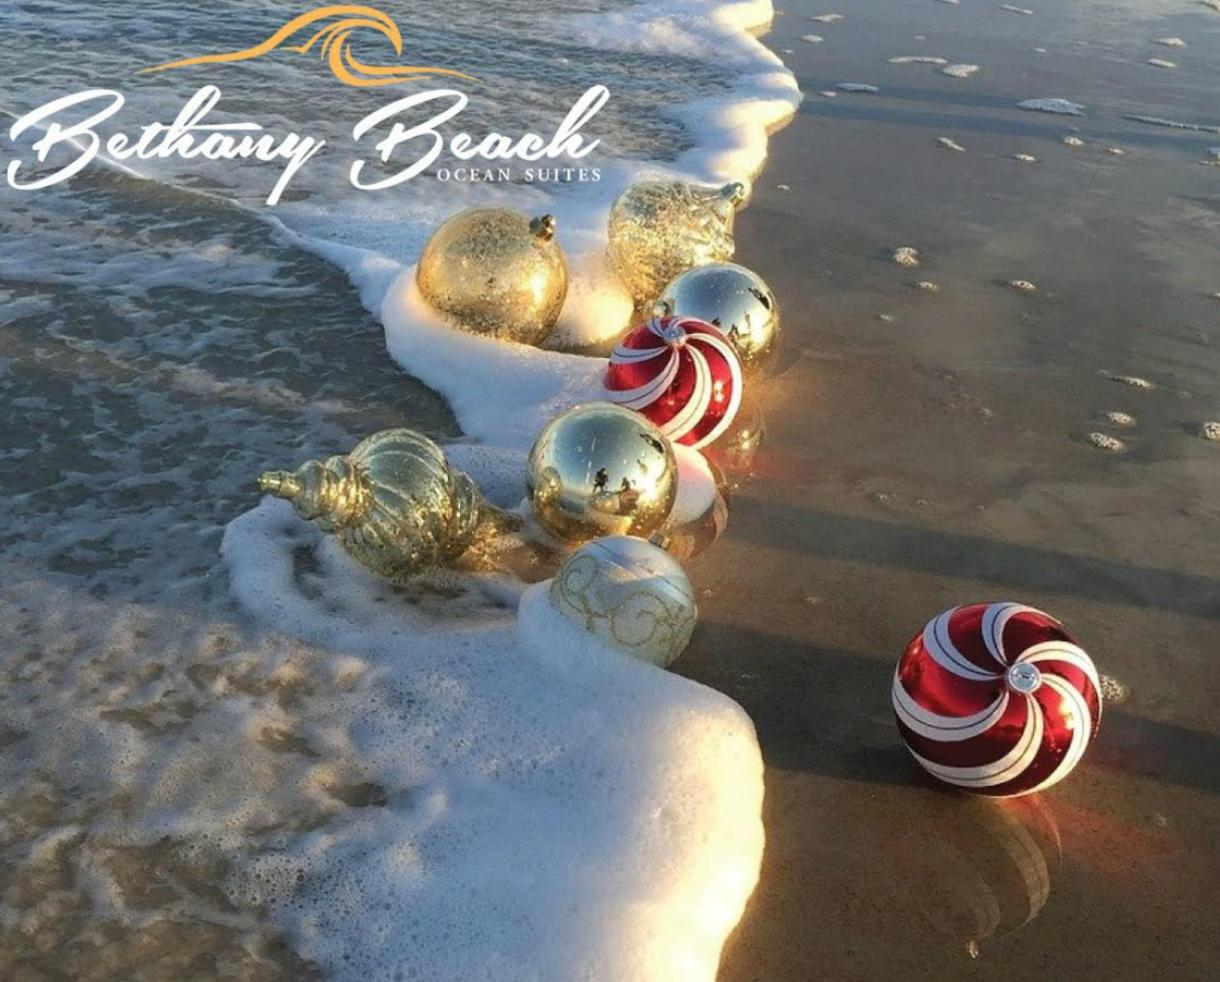 $278 for 2-Night Winter Wonderland Getaway at Bethany Beach Ocean Suites - Includes Breakfast with Mrs. Clause, Photos with Santa, Elf on the Shelf Bingo & More! Dec 15-17 ($418 Value)